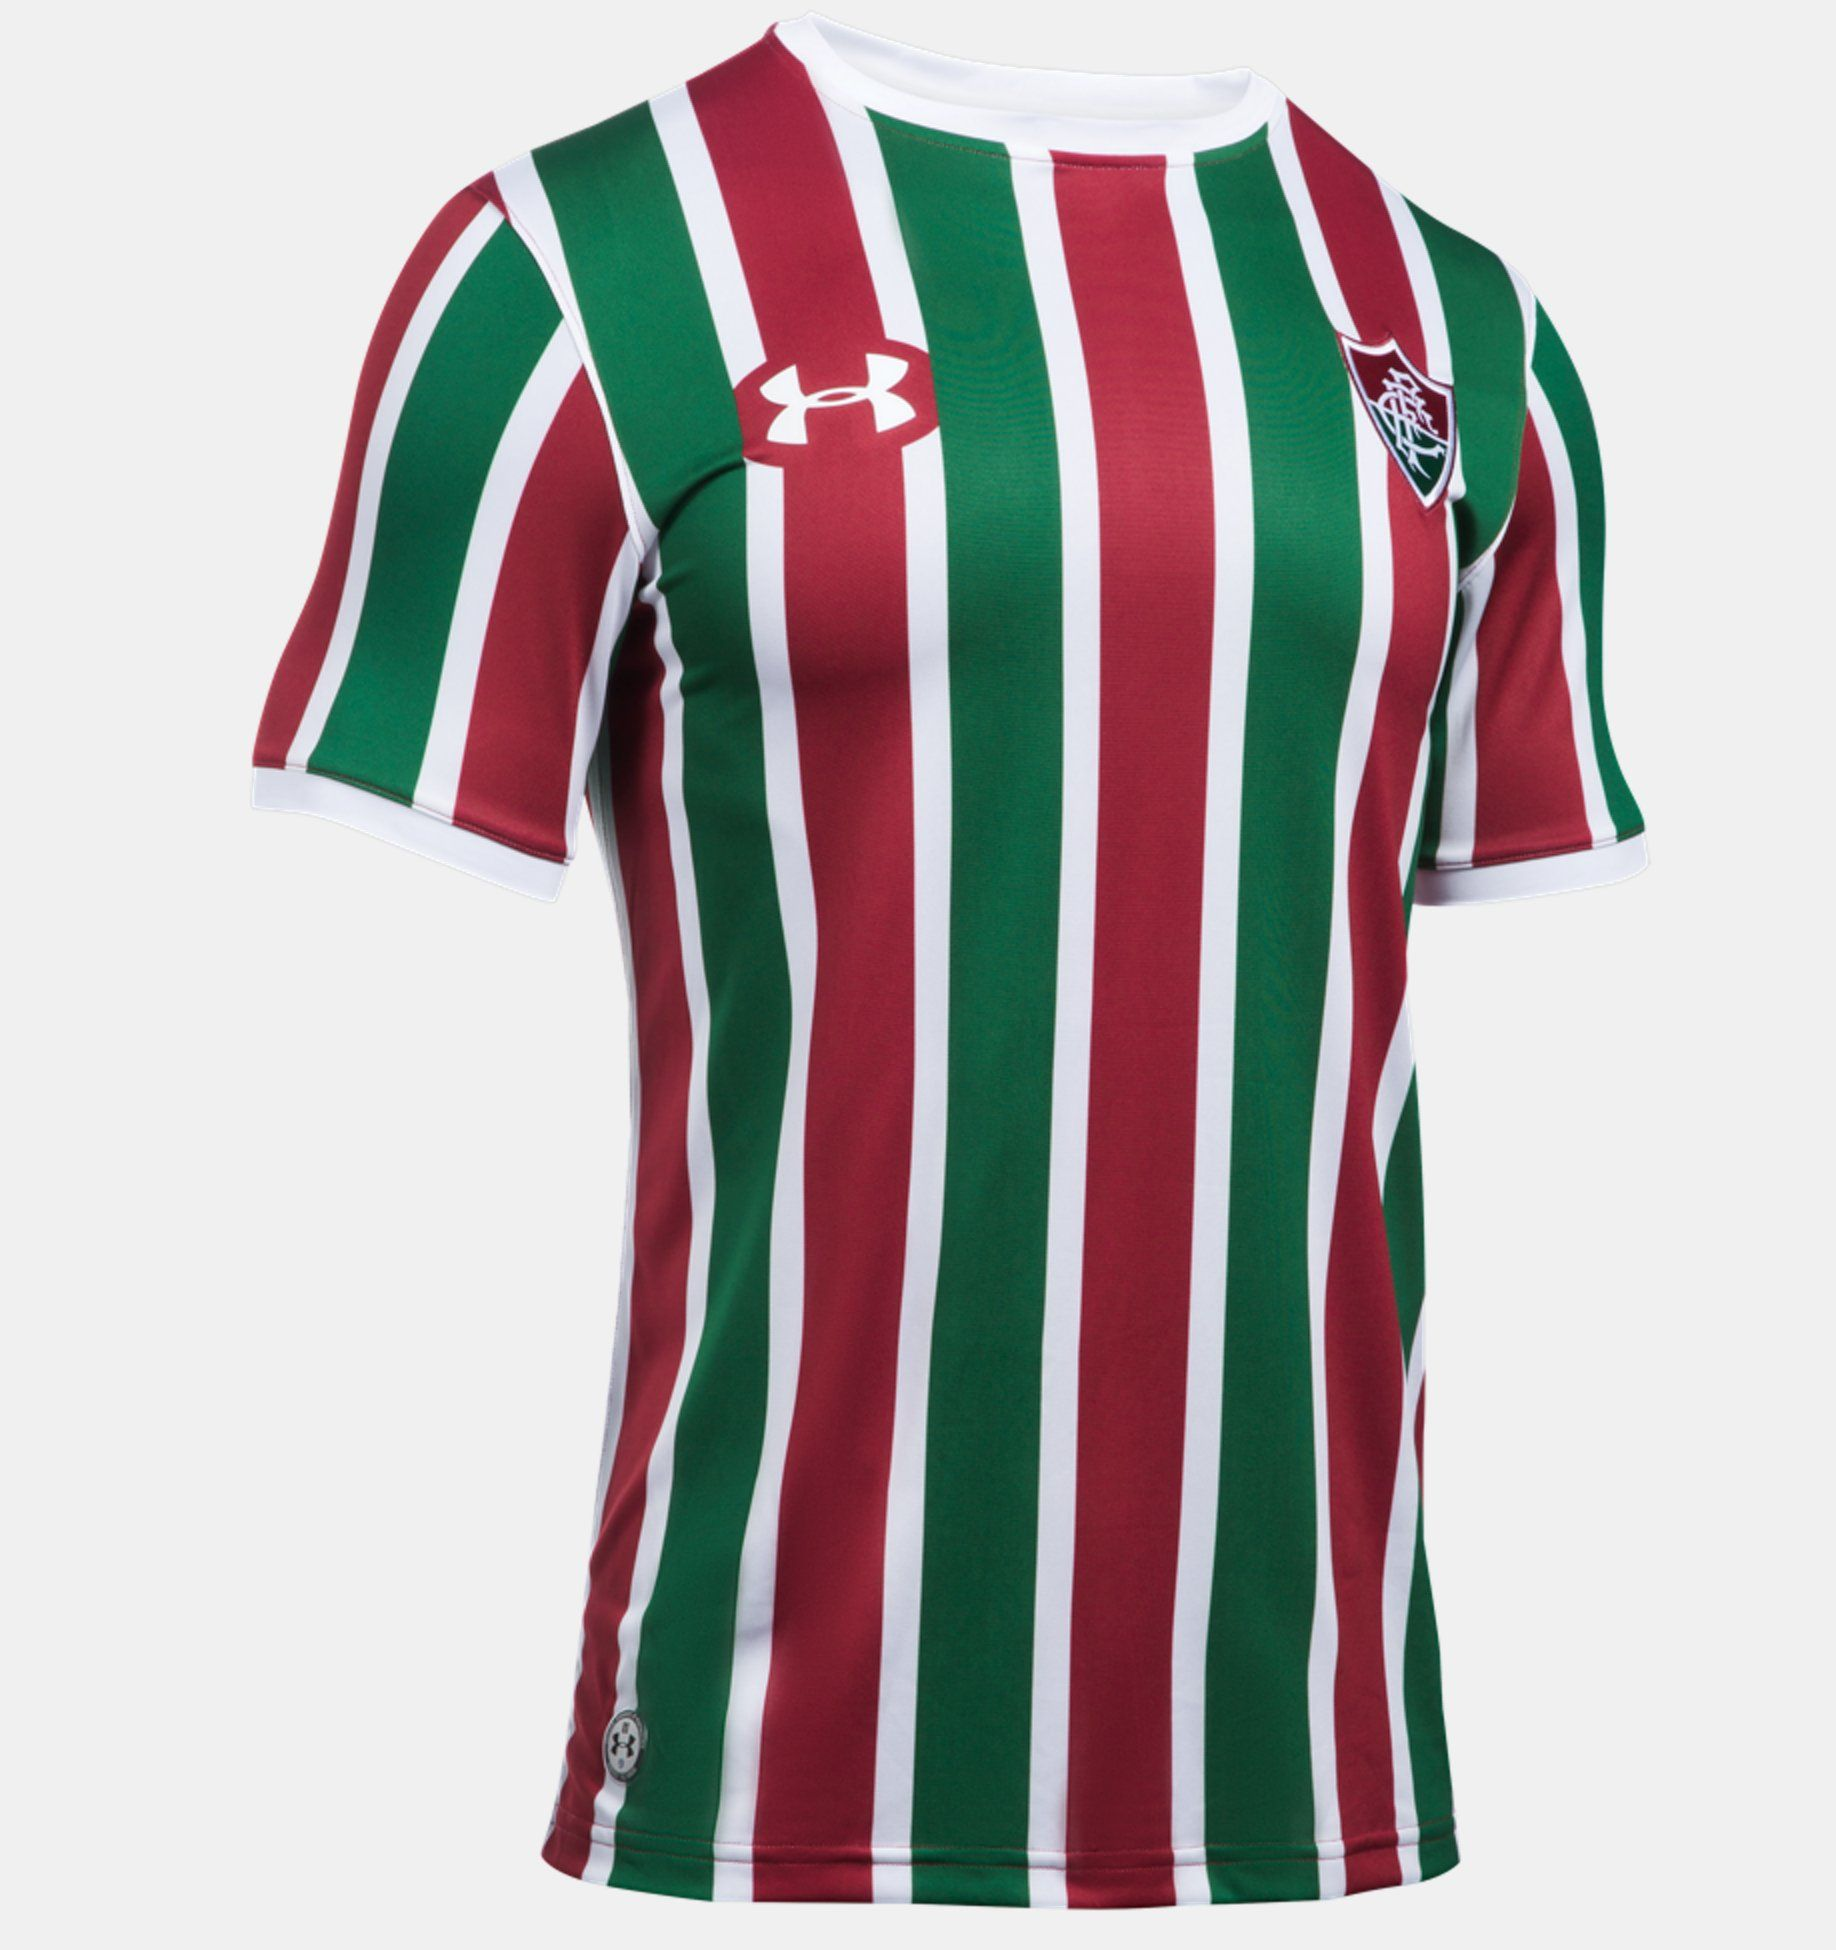 Camiseta Fluminense 1 2017 Under Armour Tricolor Adulto Torcedor